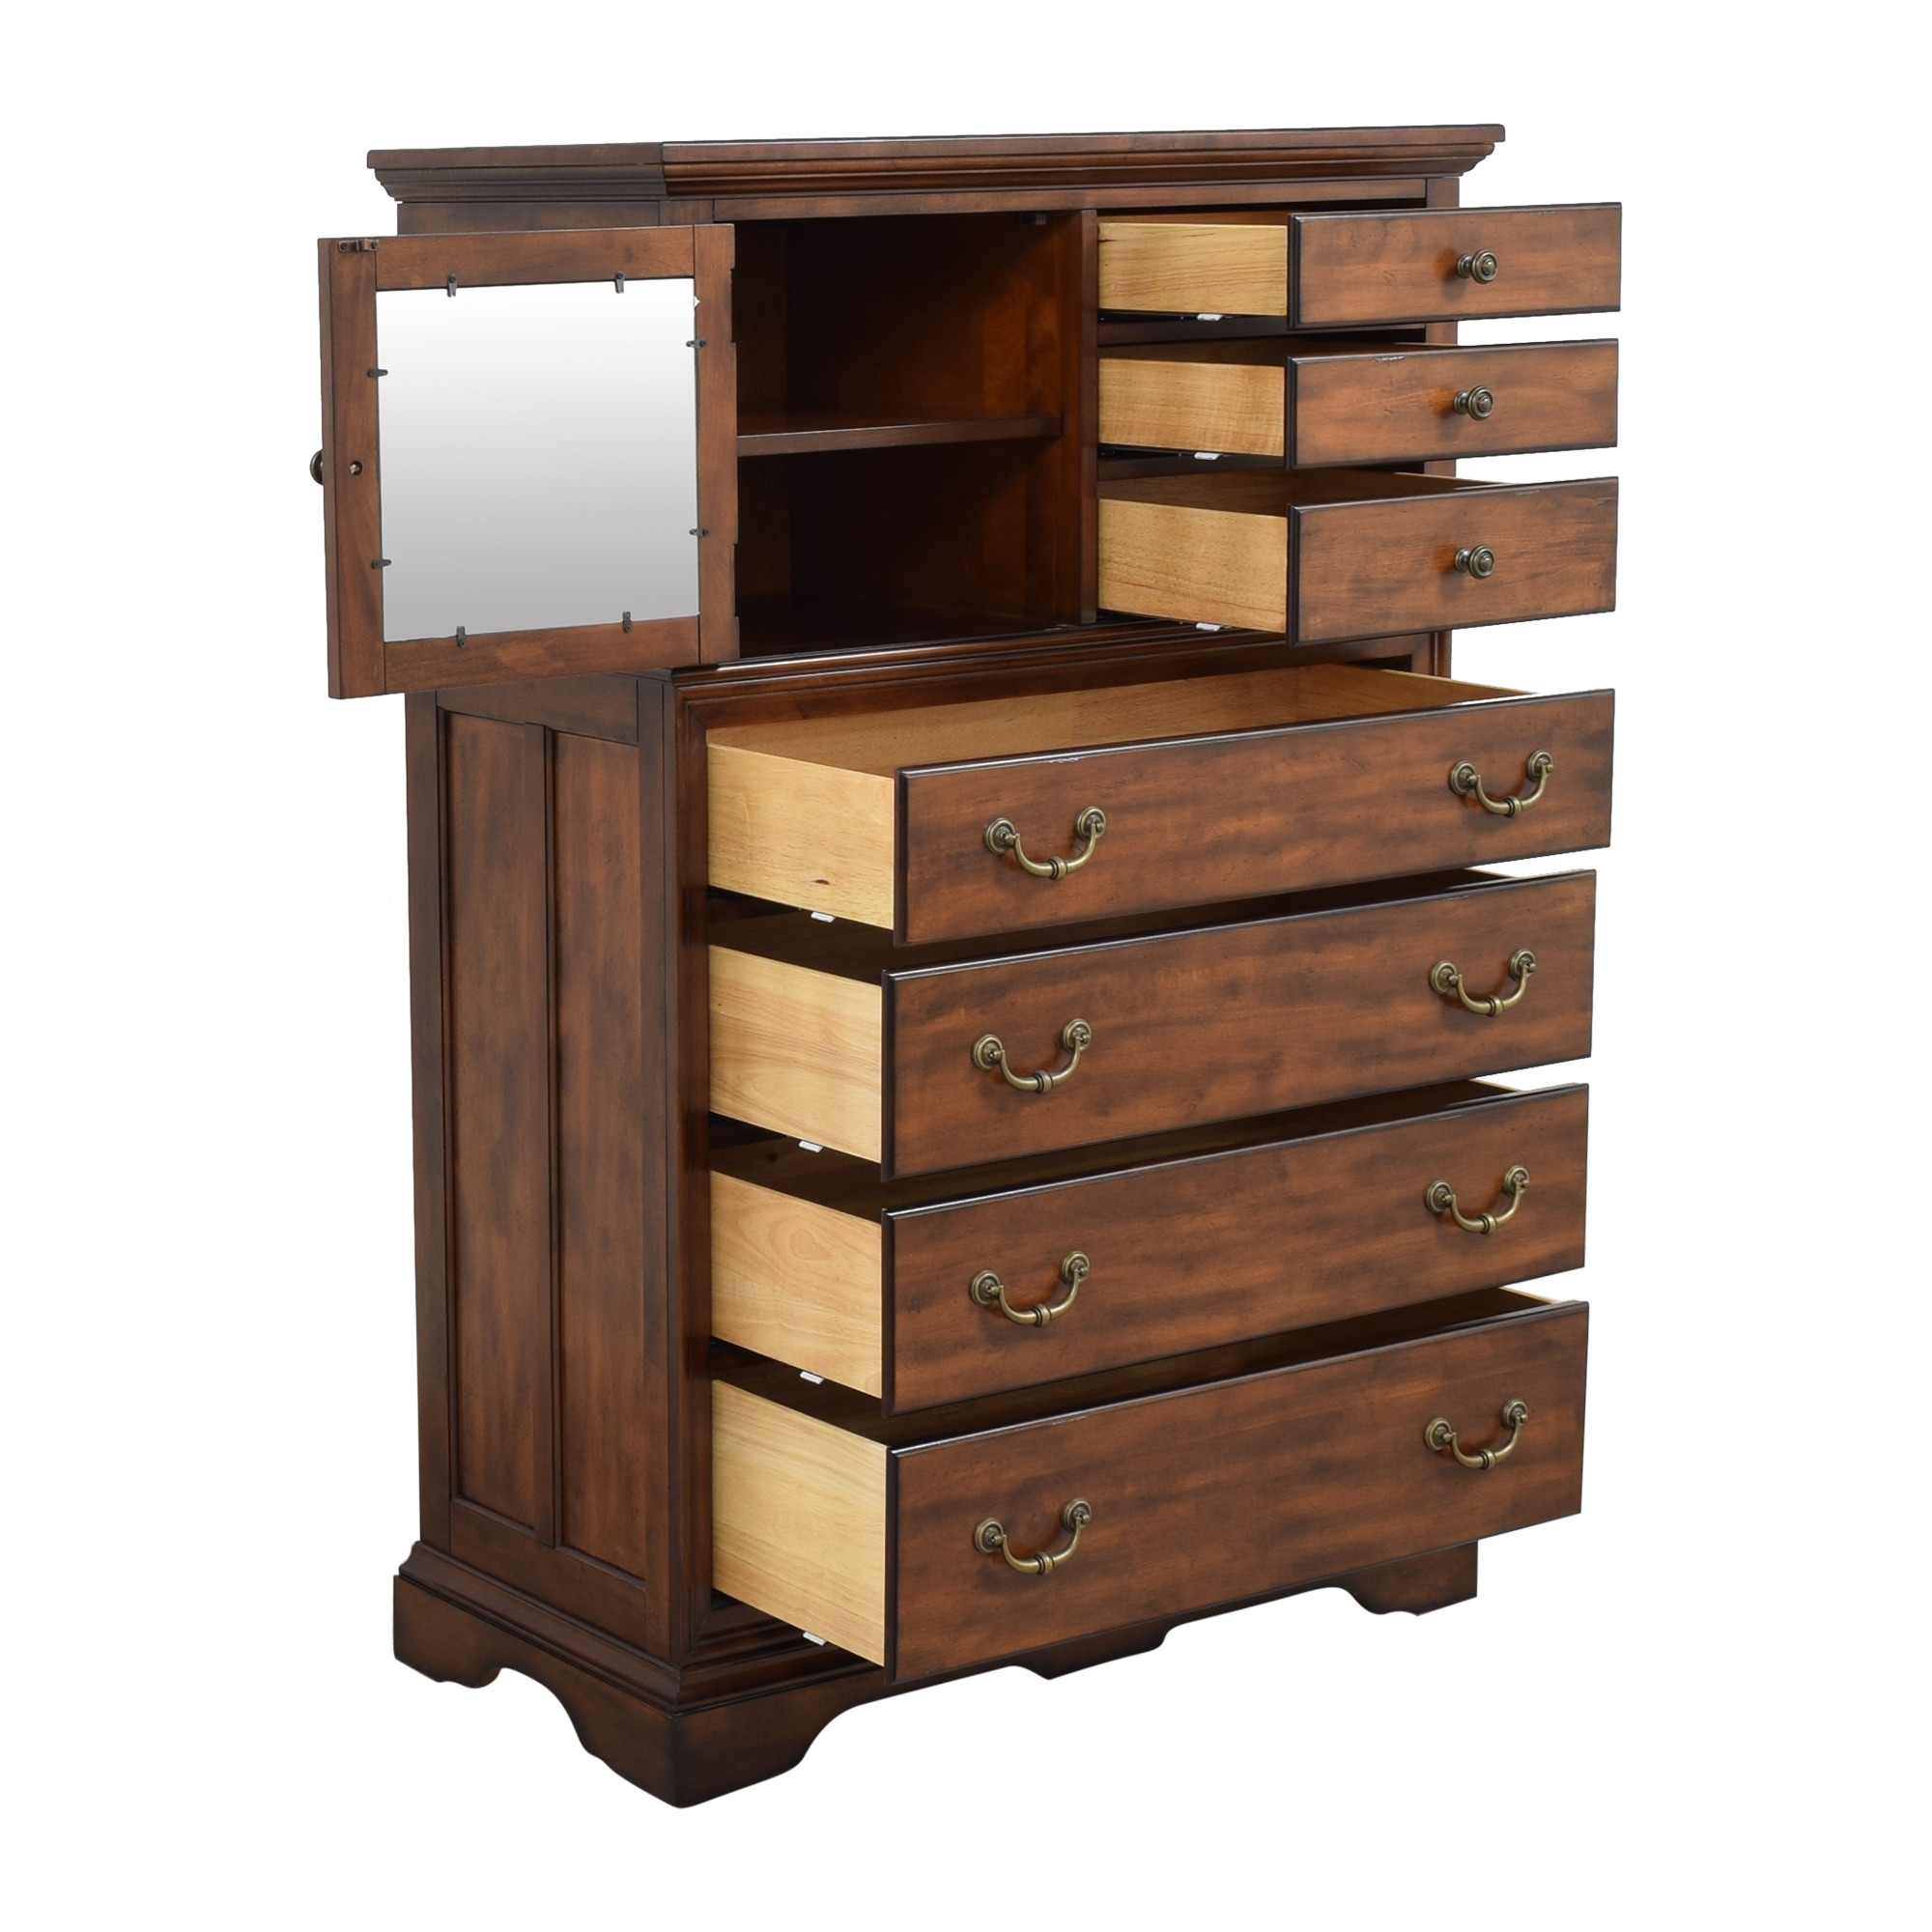 buy Cresent Furniture Cresent Furniture Tall Chest online